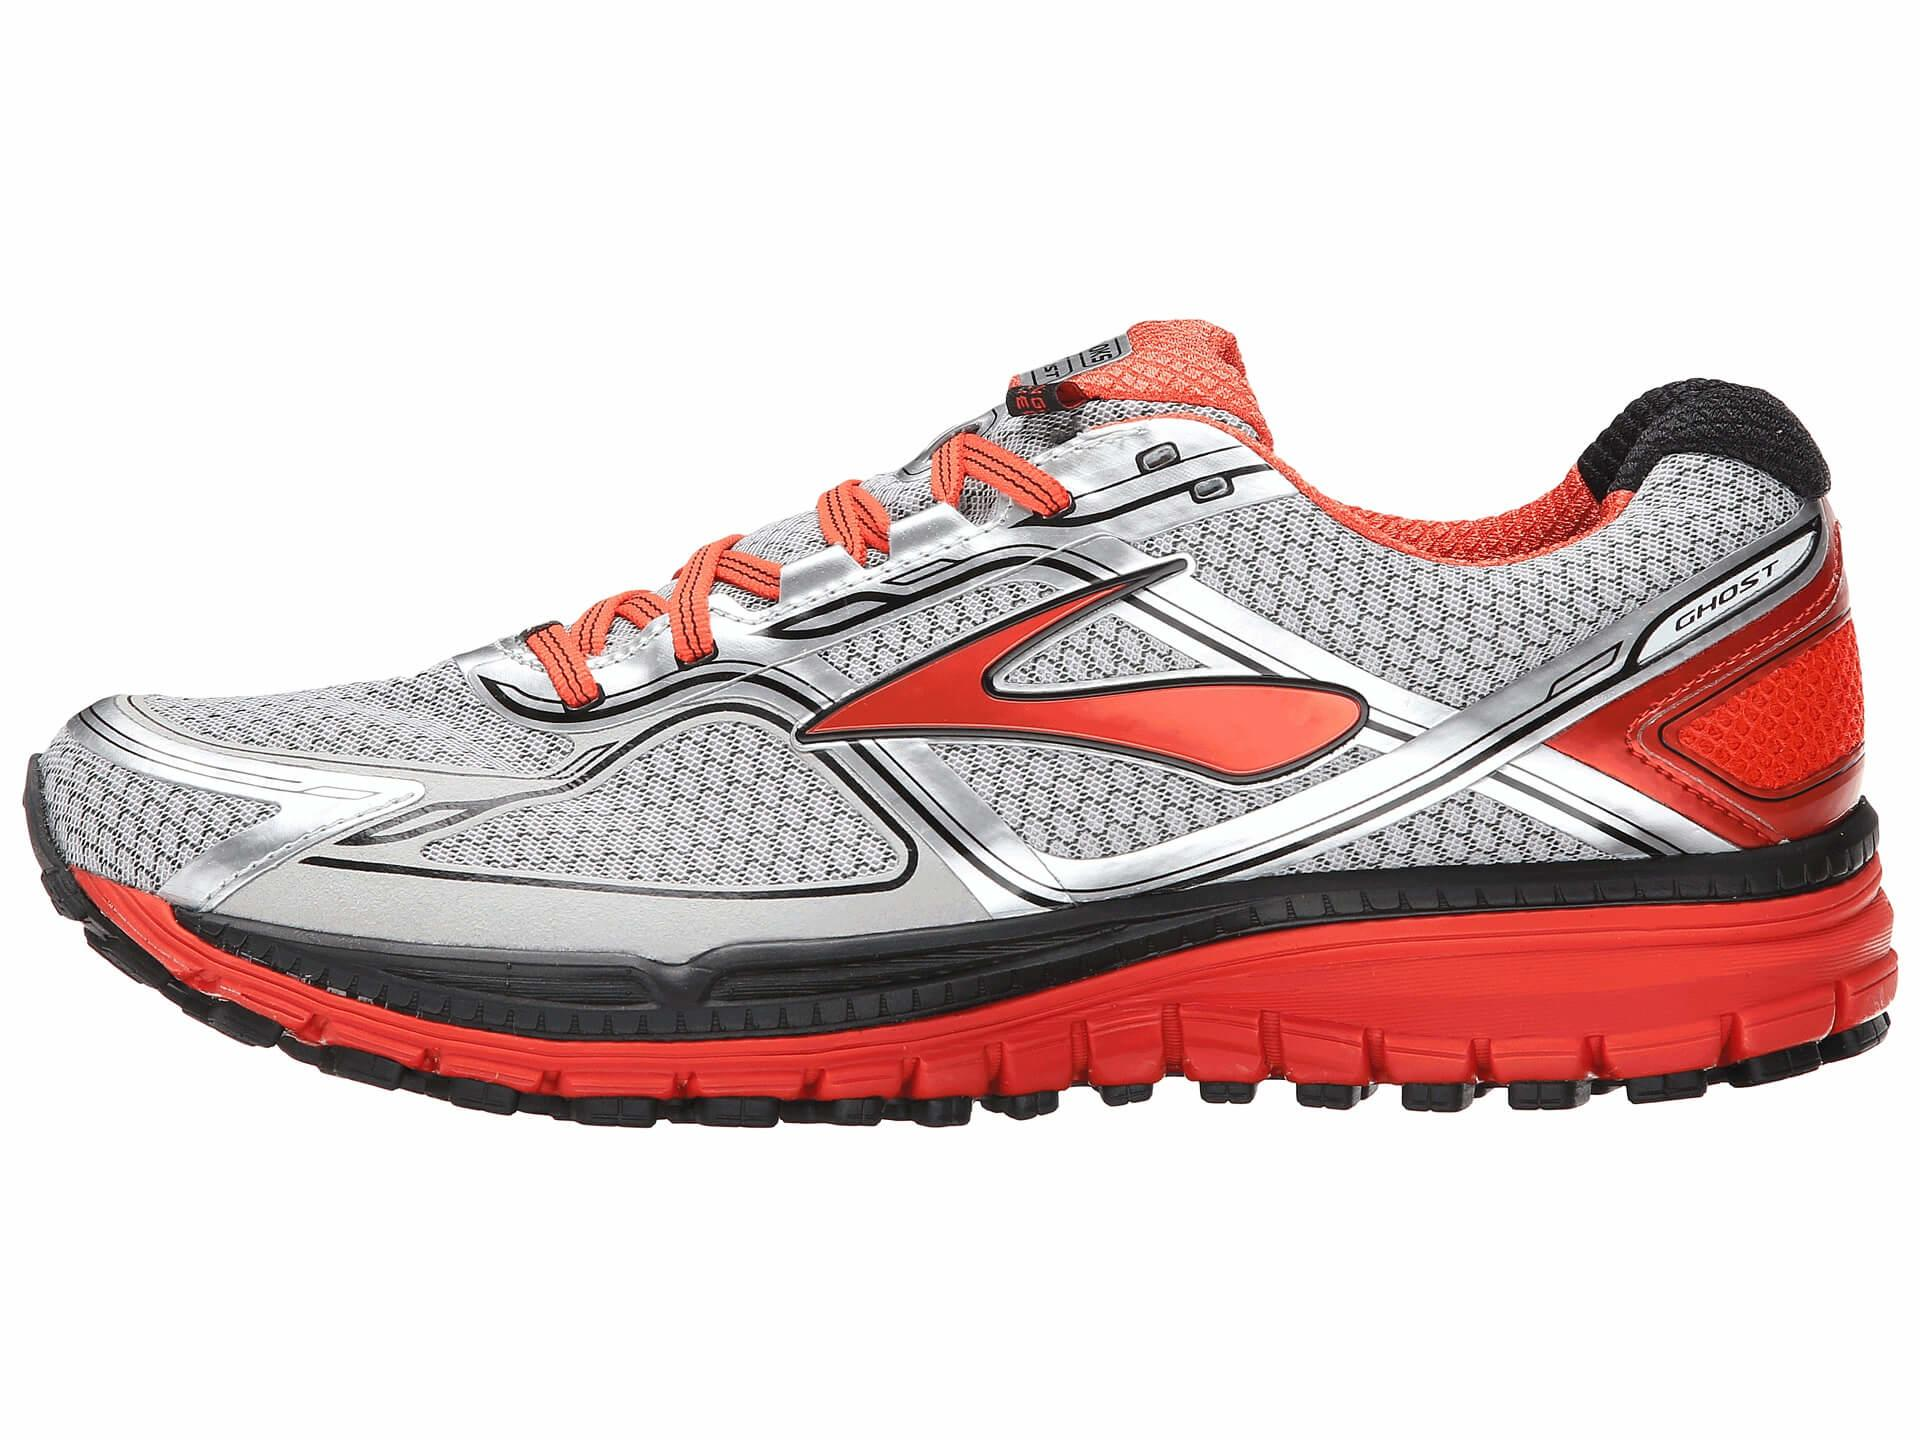 33545029fafd Brooks Ghost 8 GTX Reviewed - To Buy or Not in Apr 2019